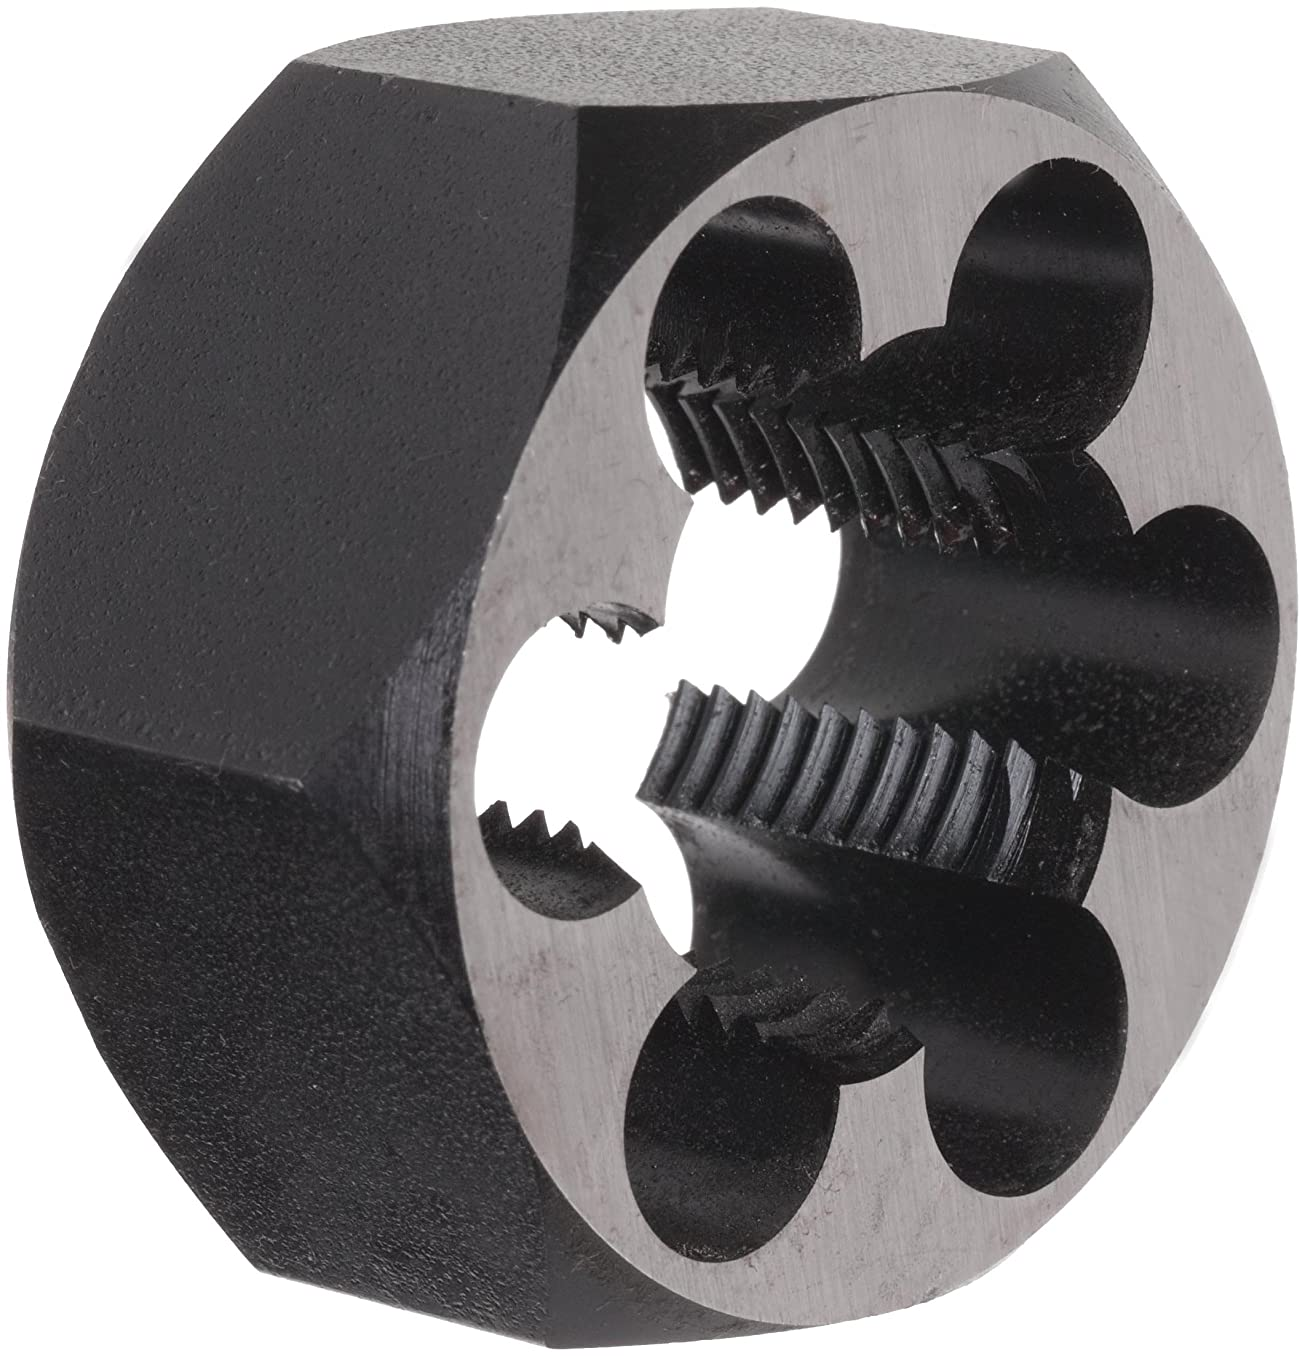 Union Butterfield 2025(UNF) Carbon Steel Hexagon Threading Die, Uncoated (Bright) Finish, 1-1/8